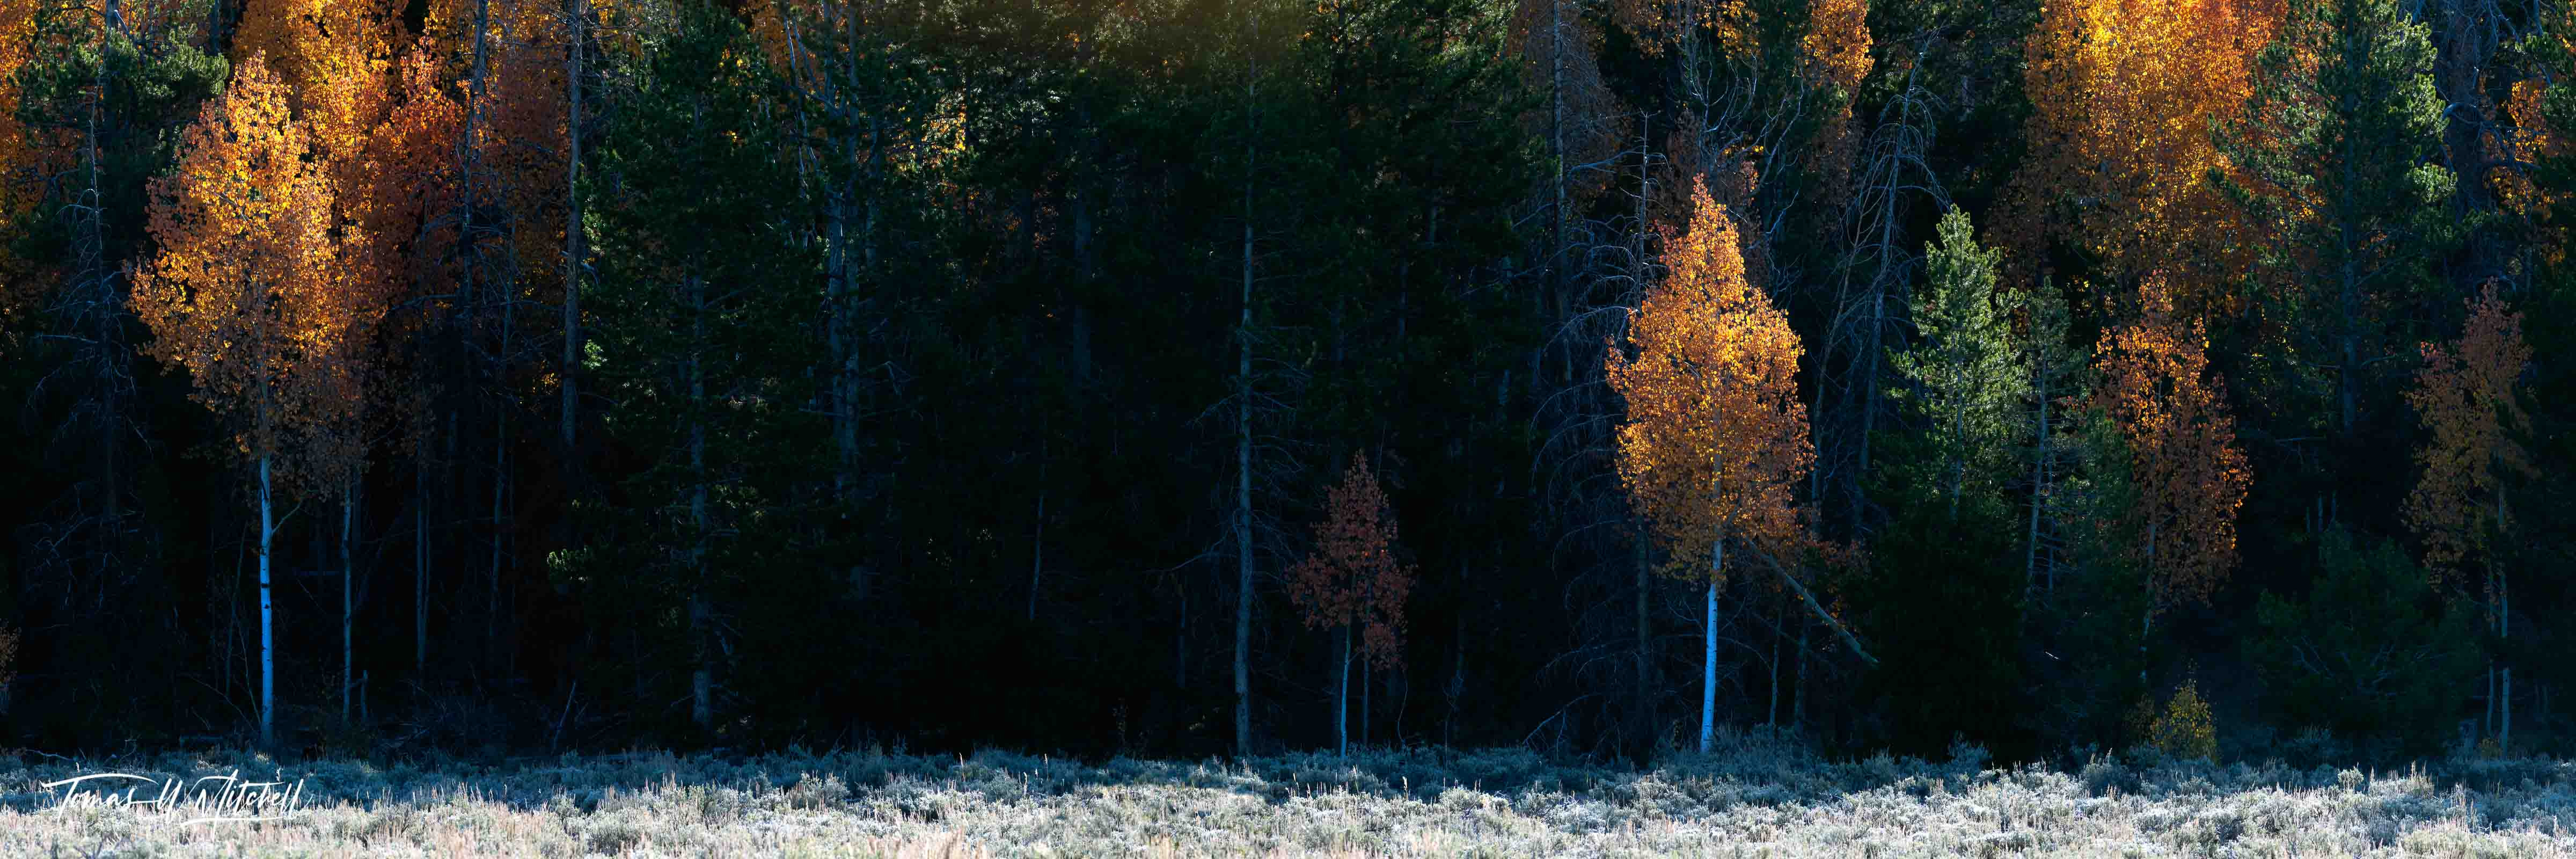 limited edition, museum grade, fine art, prints, forests, utah, national forests, mysterious, backlite, aspen trees, beacons, fall, morning, photo